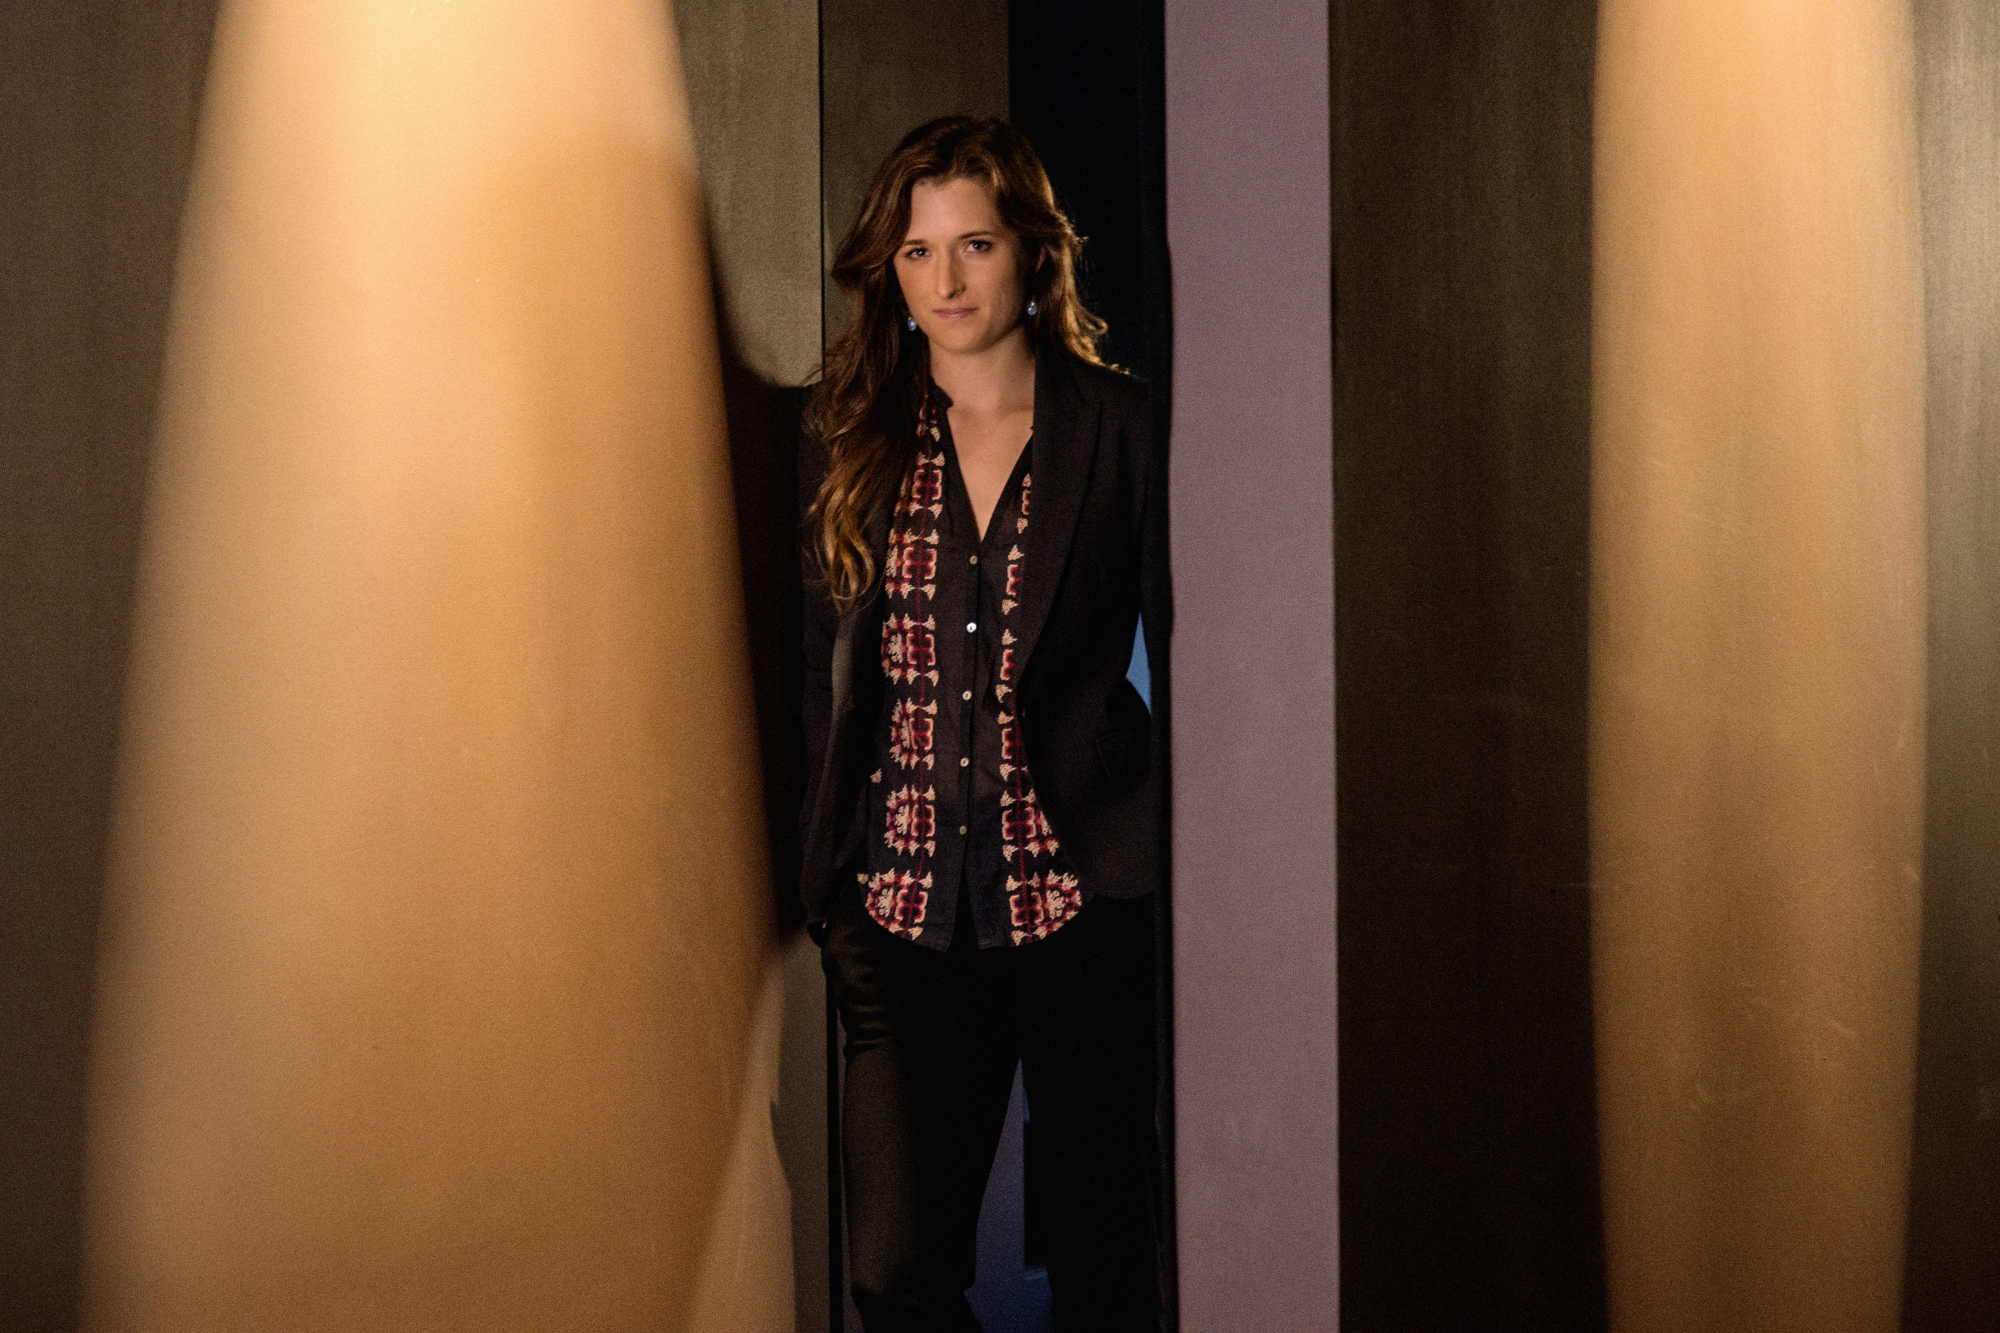 Grace Gummer in Extant - First Look